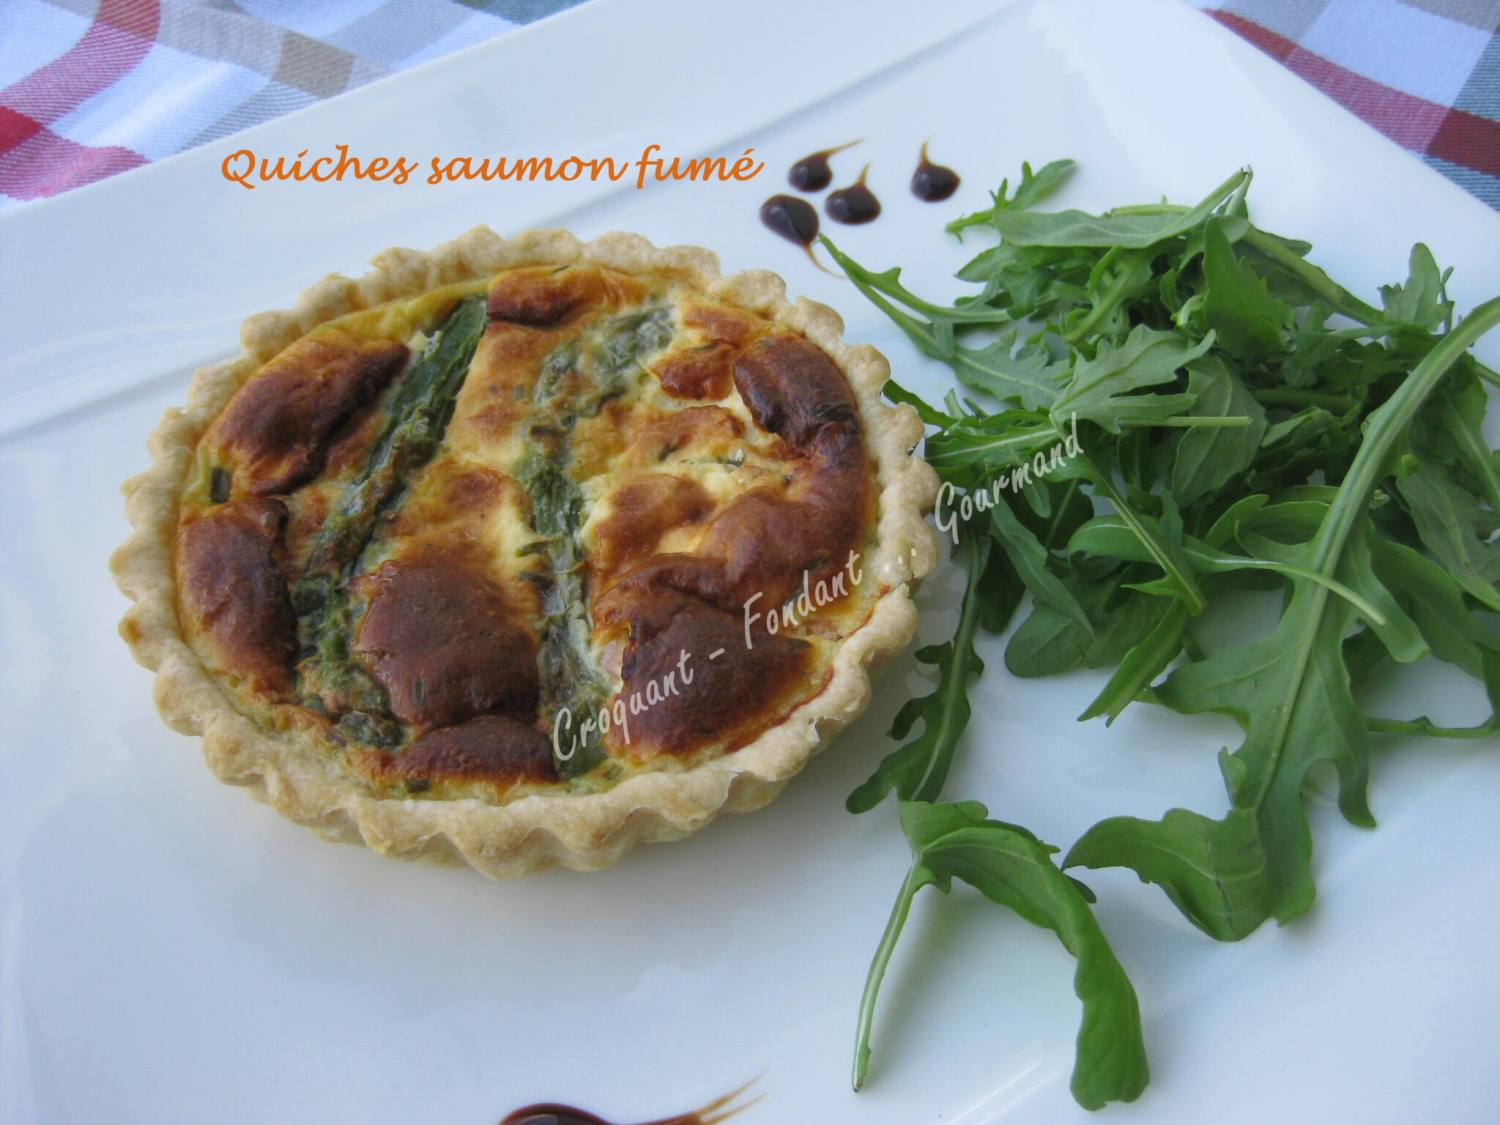 Quiches saumon fumé IMG_6294_36571